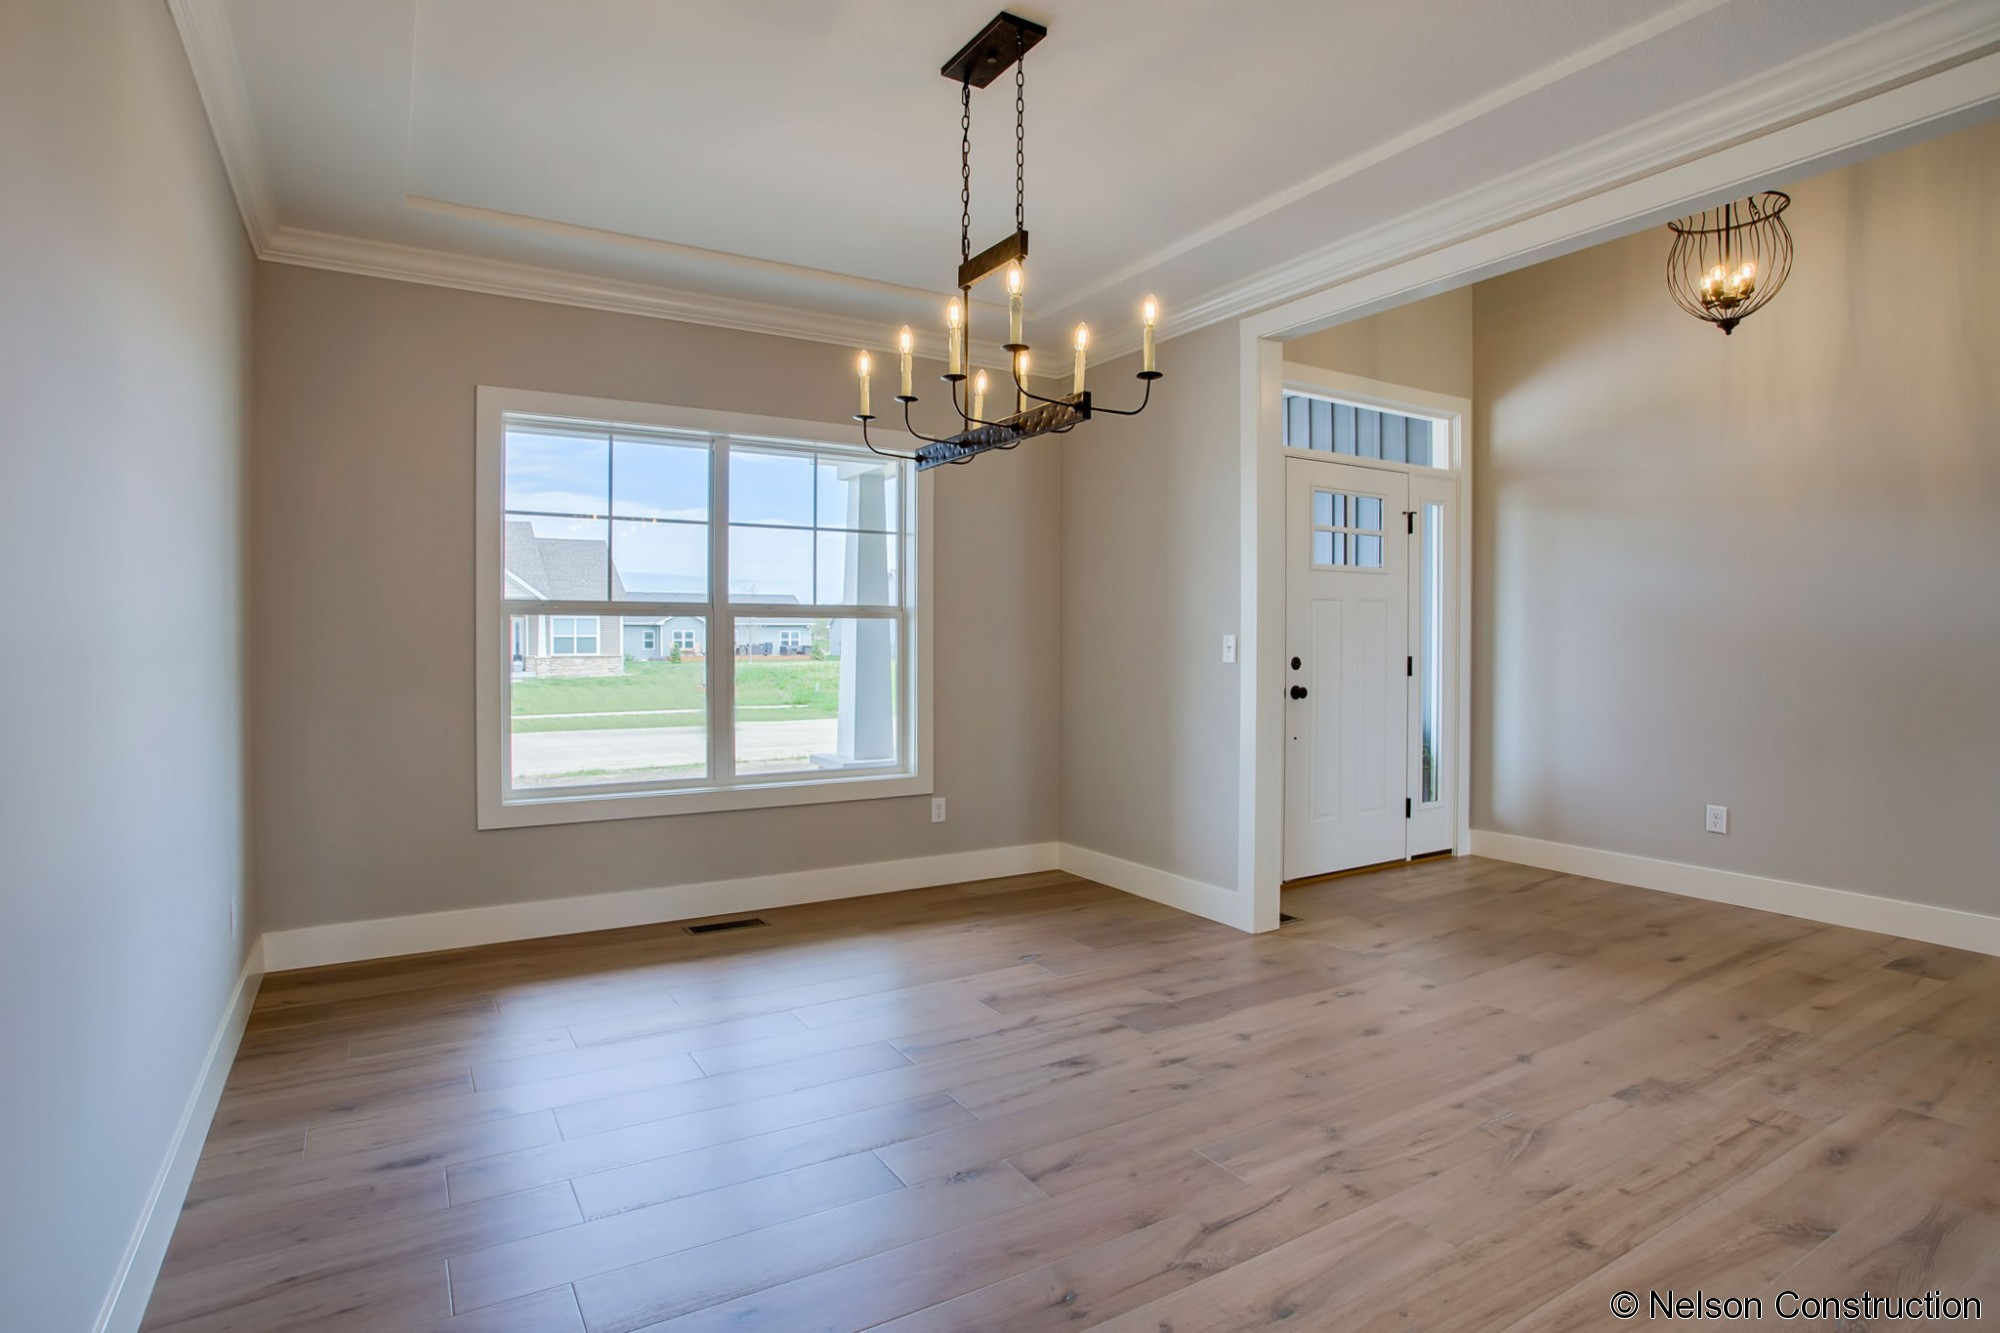 The dining room of this new Cherrydale plan features wire brushed wide plank flooring and opens to the foyer, bringing light into the space.